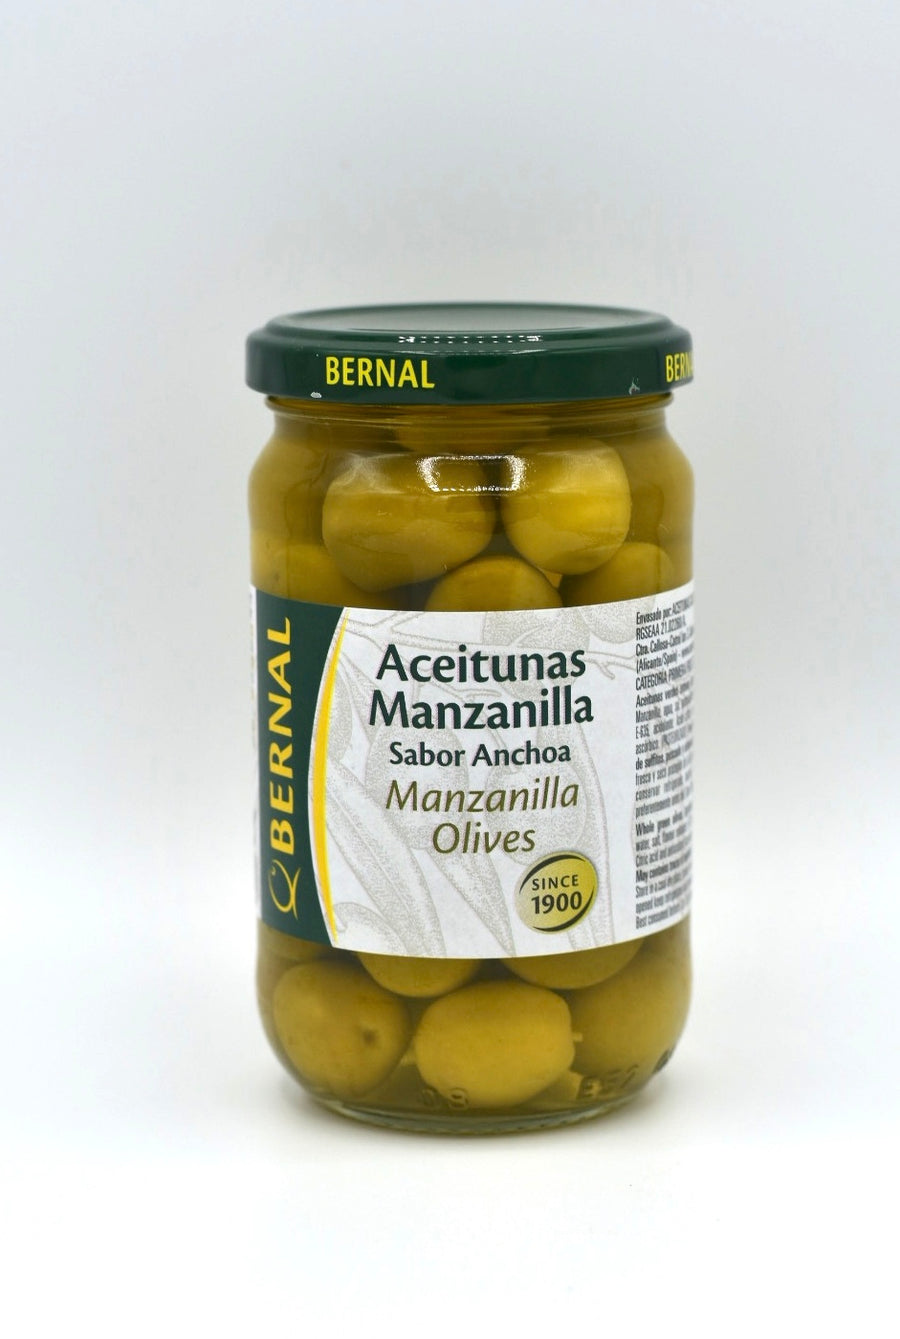 Bernal Manzanilla Olives Jar 180g